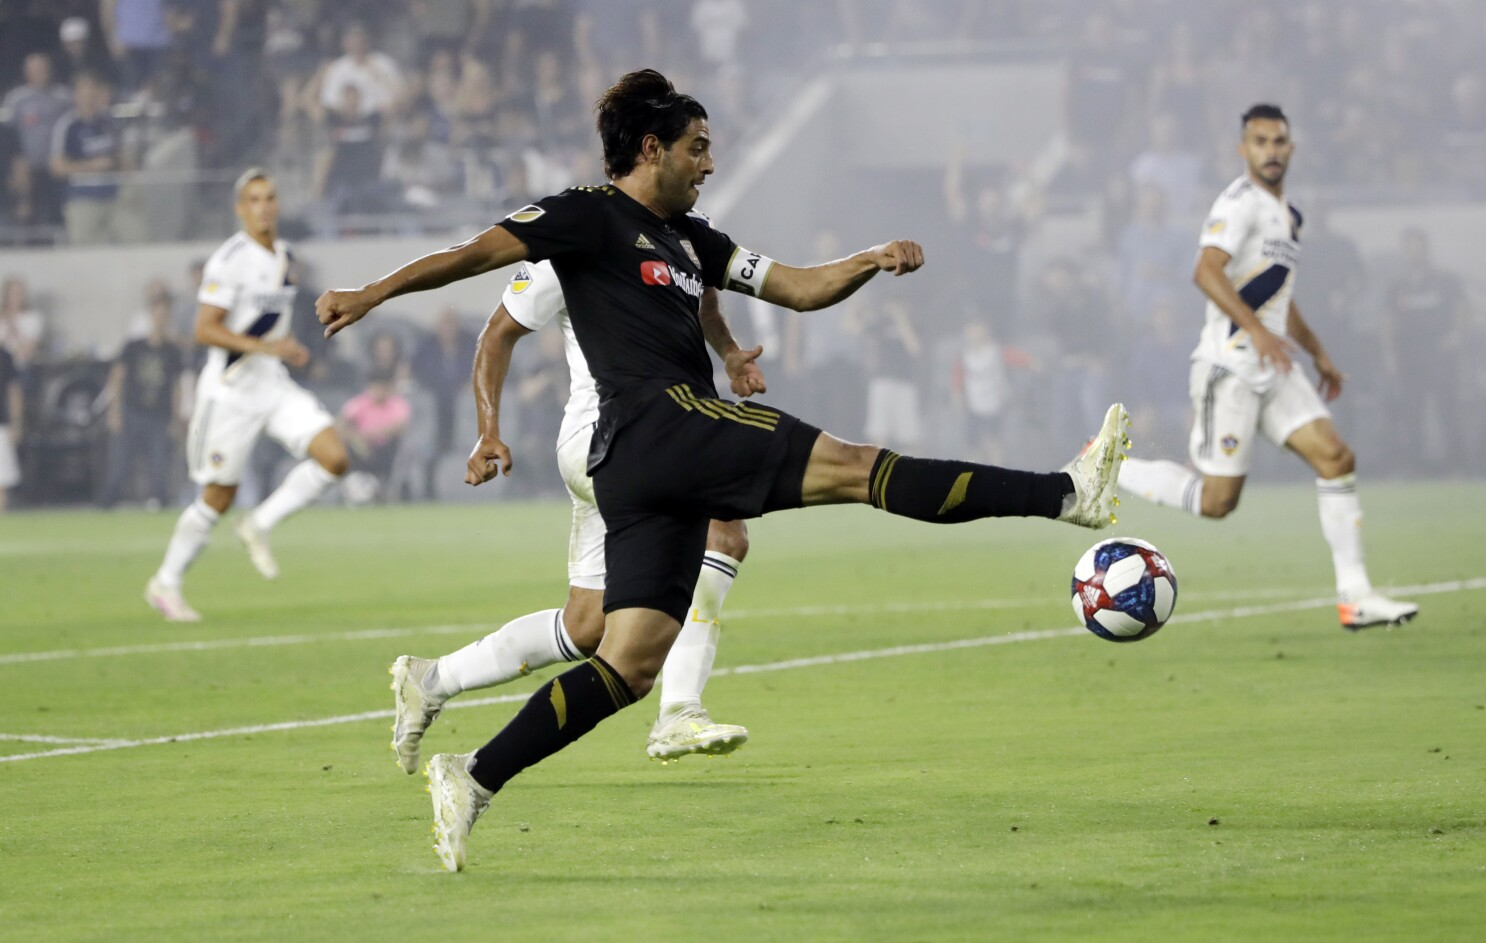 Carlos Vela's injury shows why LAFC isn't the same without him